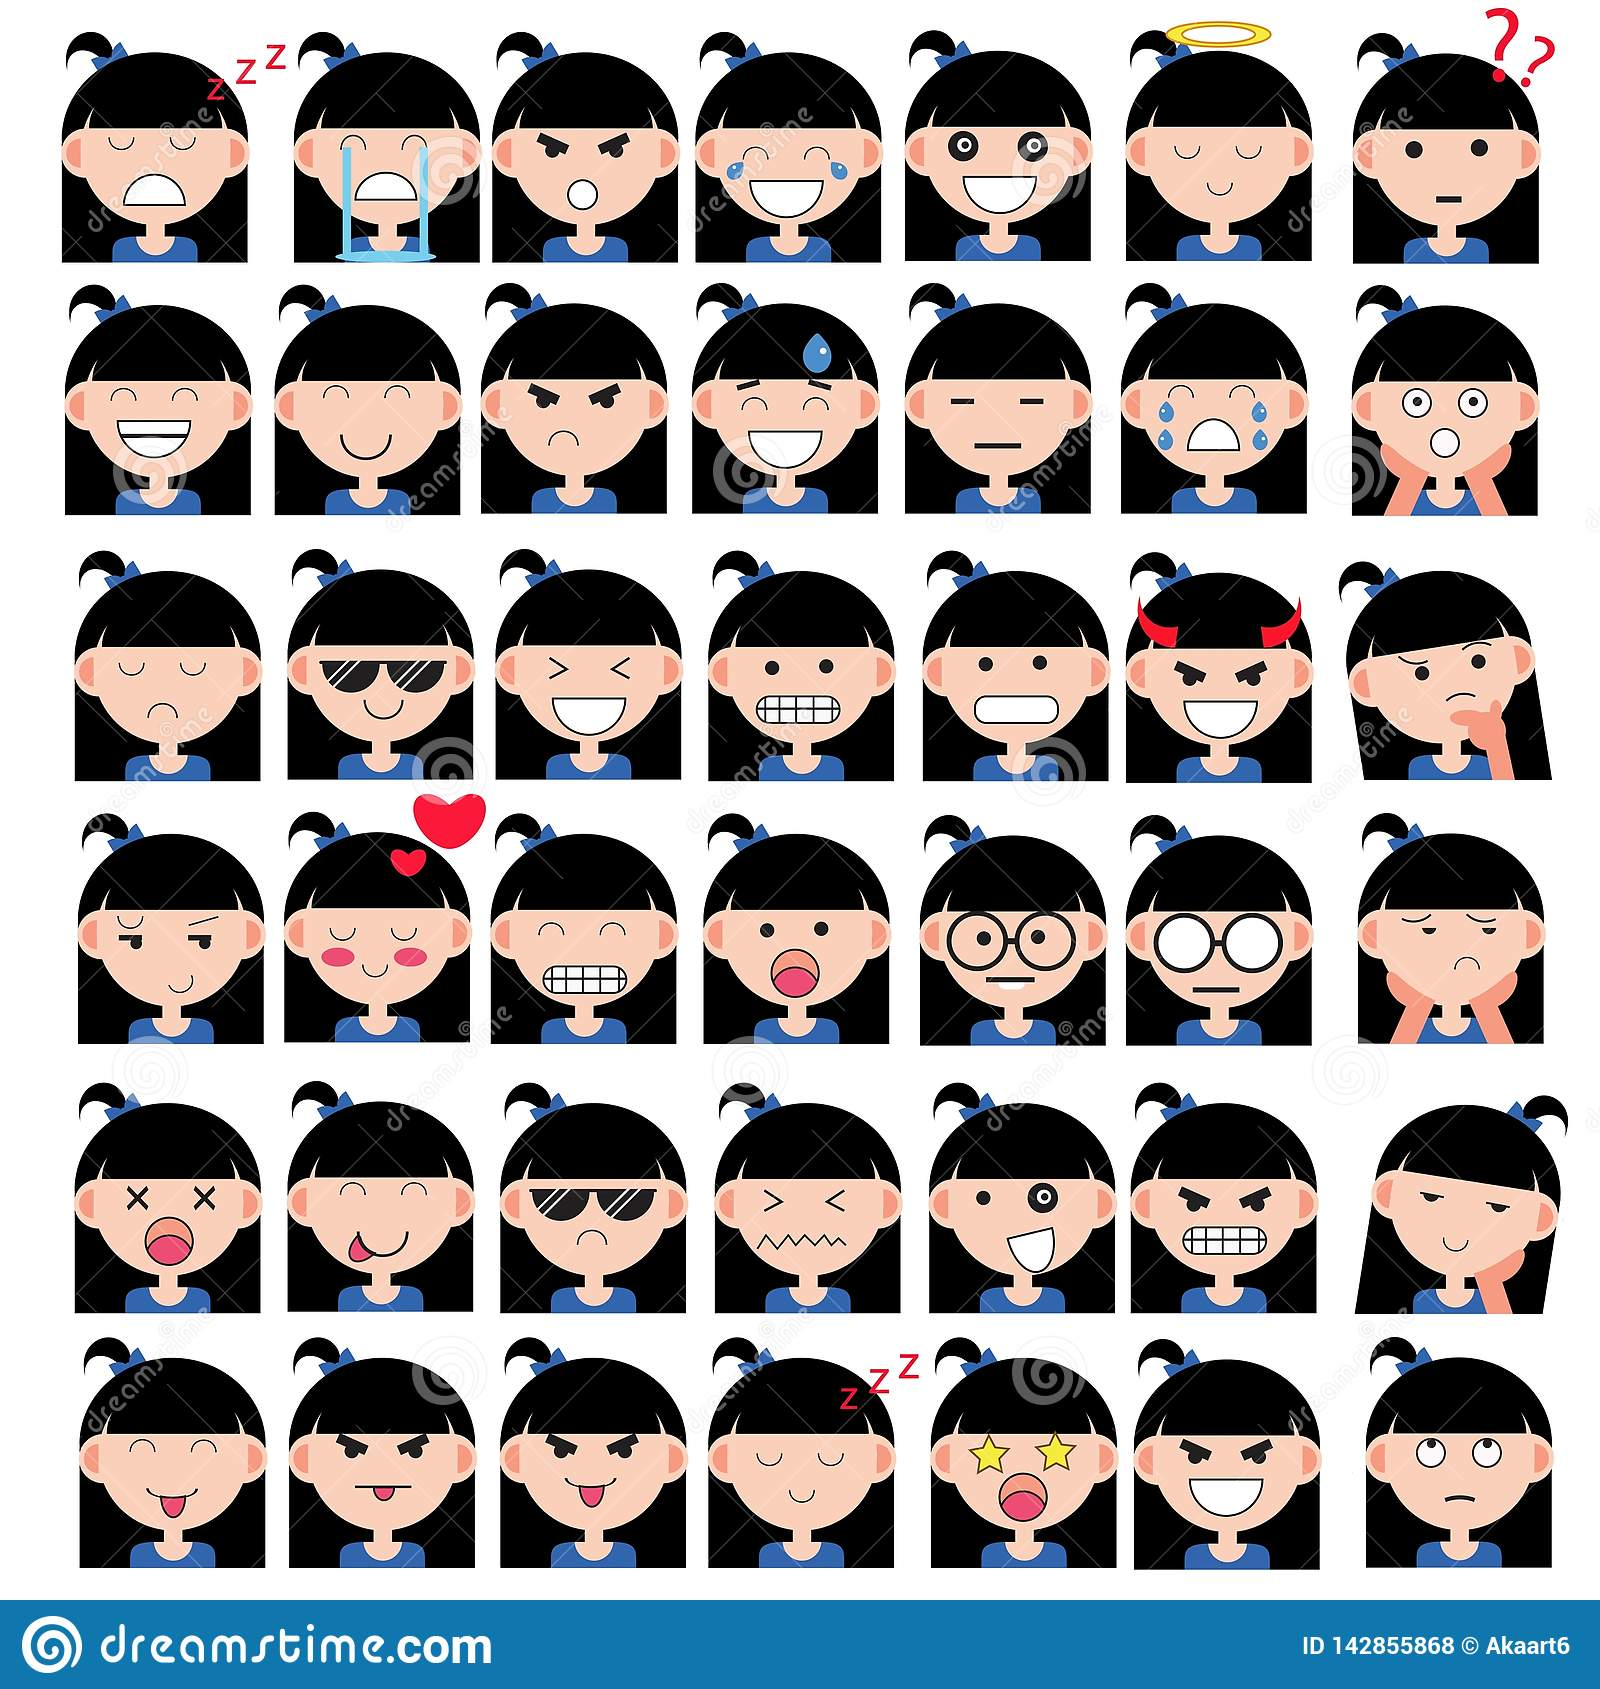 Illustration of asian cute girl faces showing different emotions. Joy, sadness, anger, talking, funny, fear, smile. Isolated